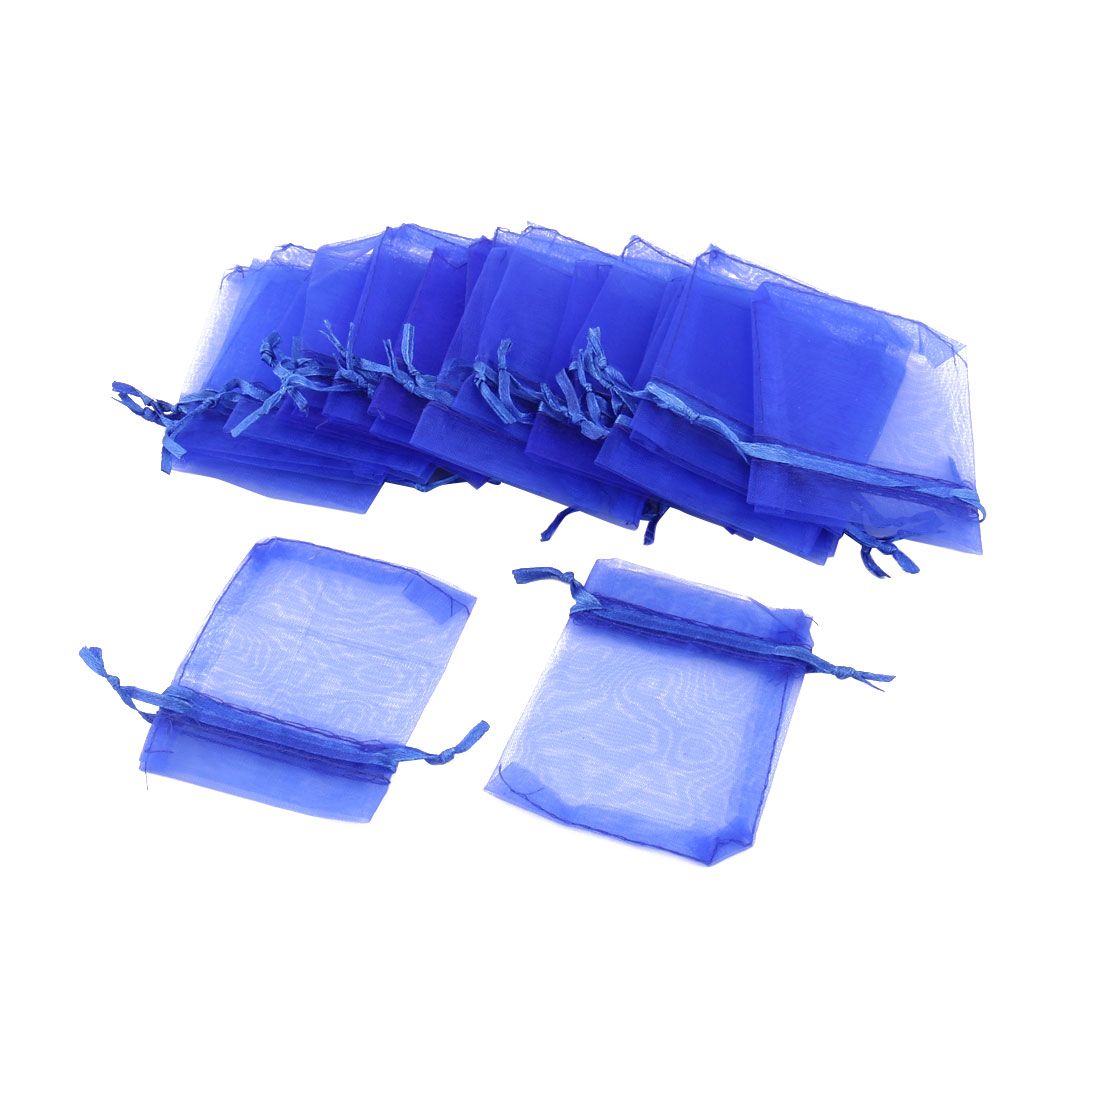 "25 Pcs Organza Gift Bags Drawstring Jewelry Pouches Wedding Bags 3.5"" x 2.8"""